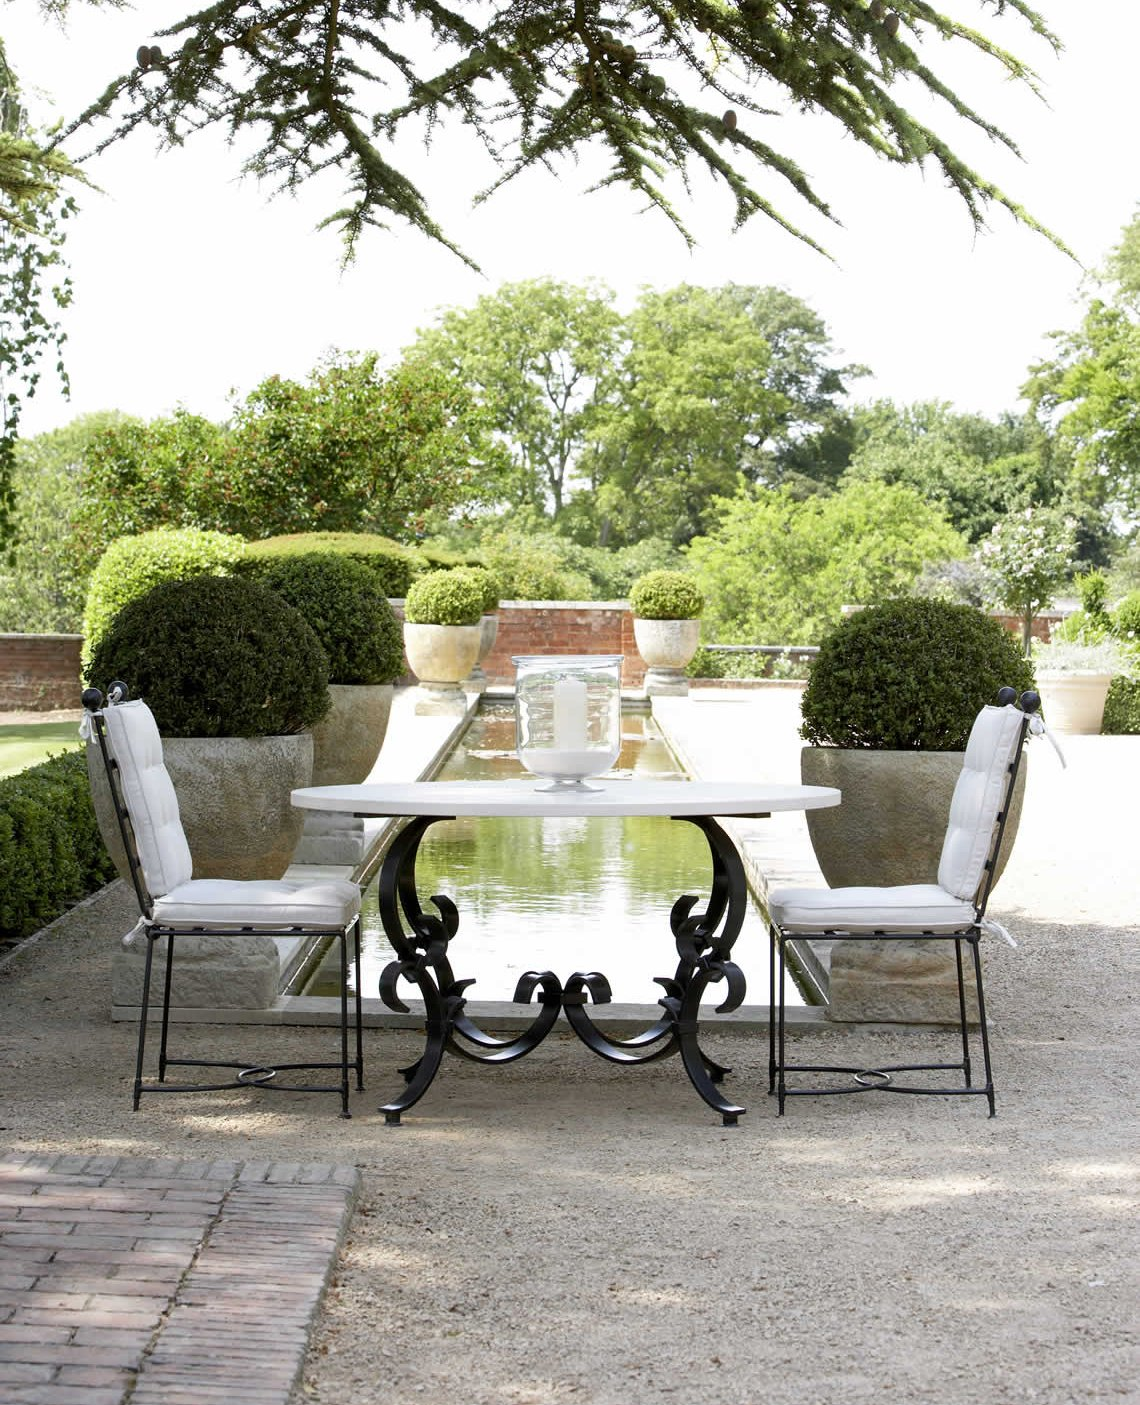 Norsebury Table and Chairs